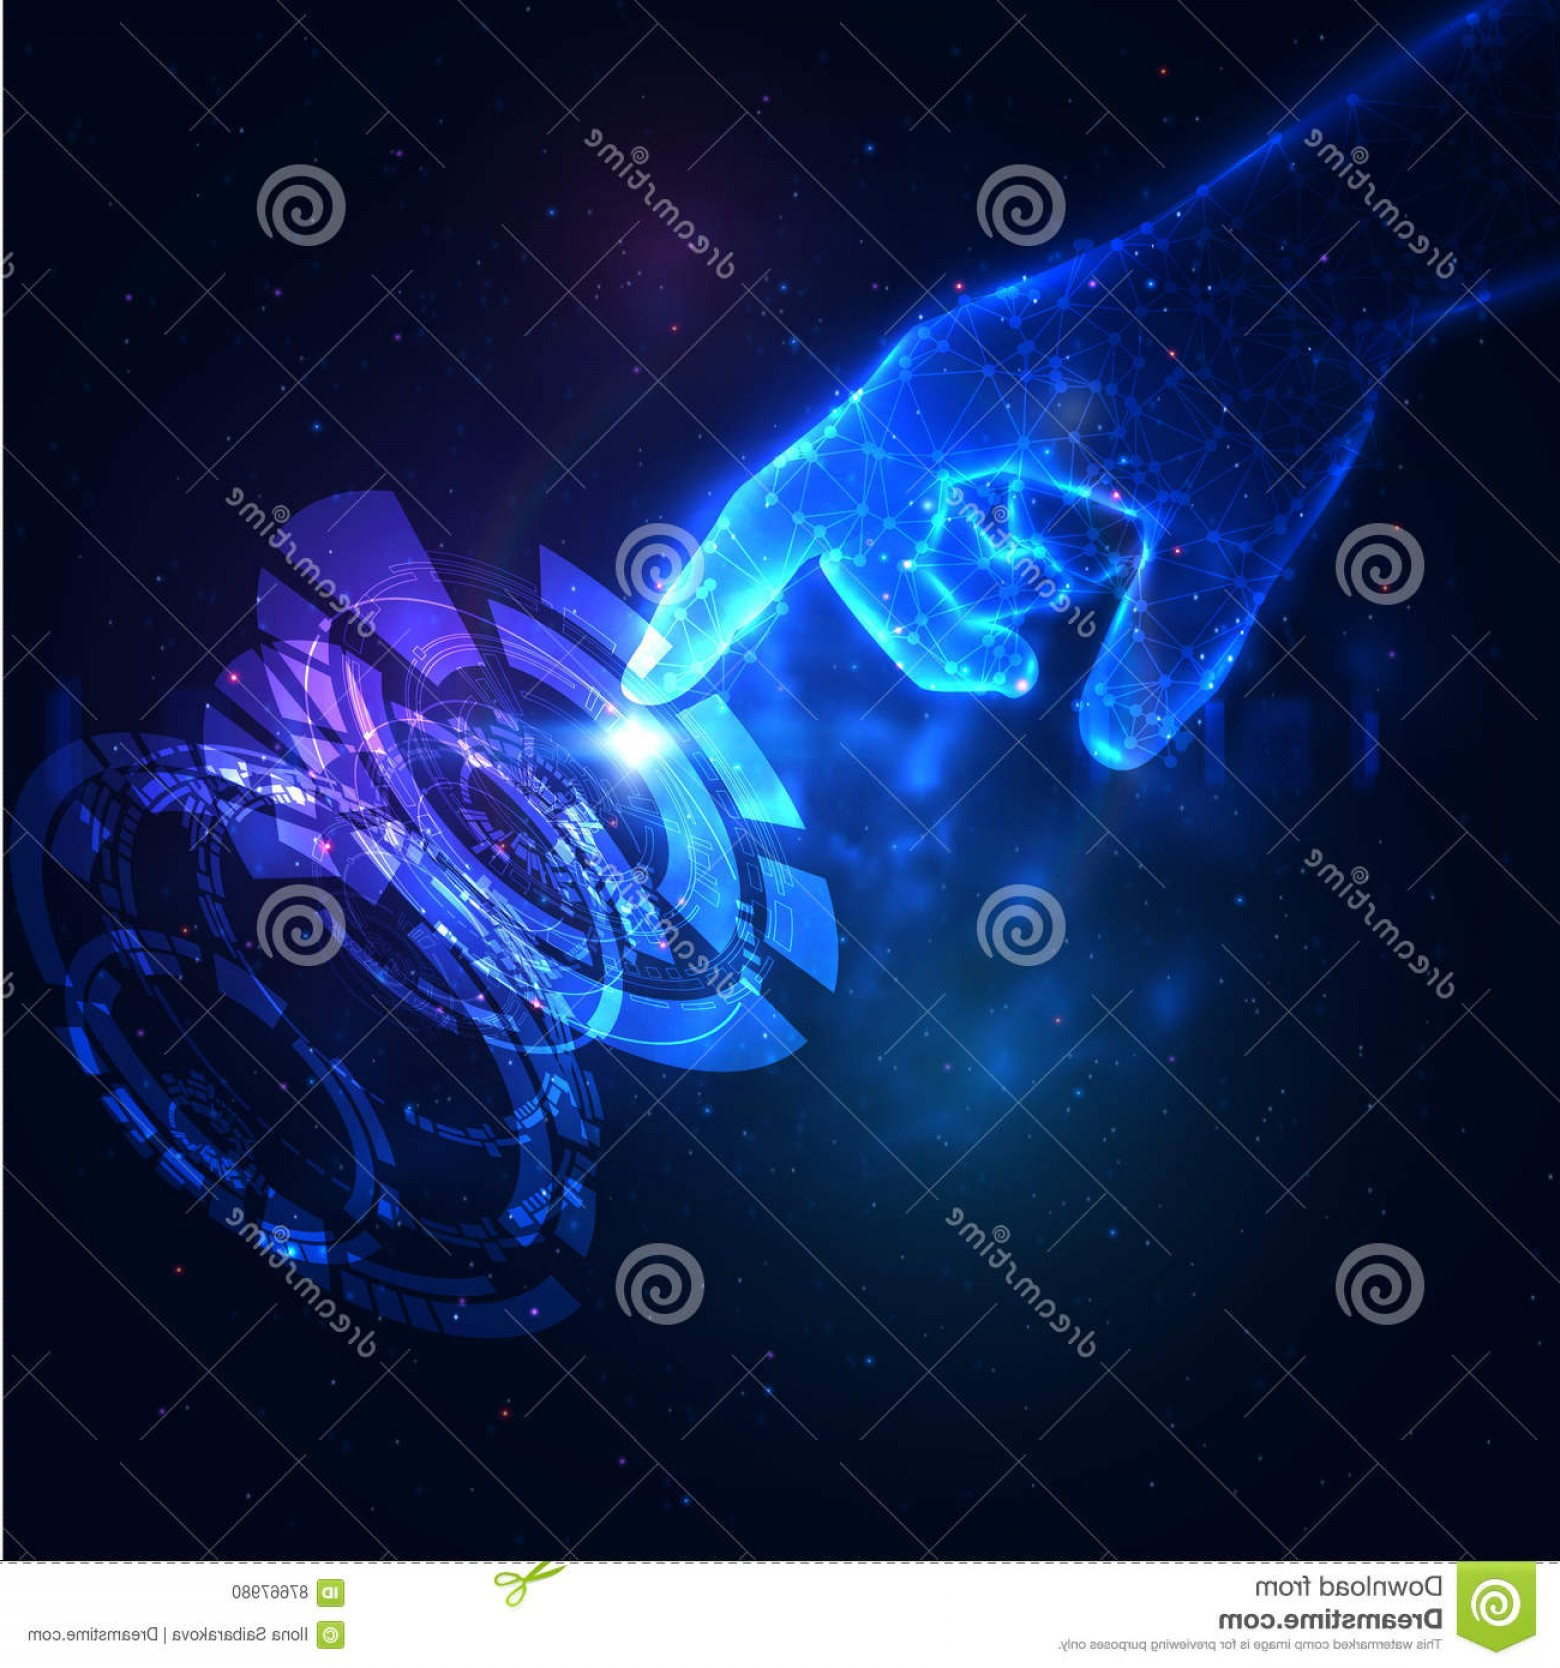 Blue Technology Vector Illustration: Stock Illustration Shiny Blue Technology Background Vector Hand Holding Energy Ball Eps Image